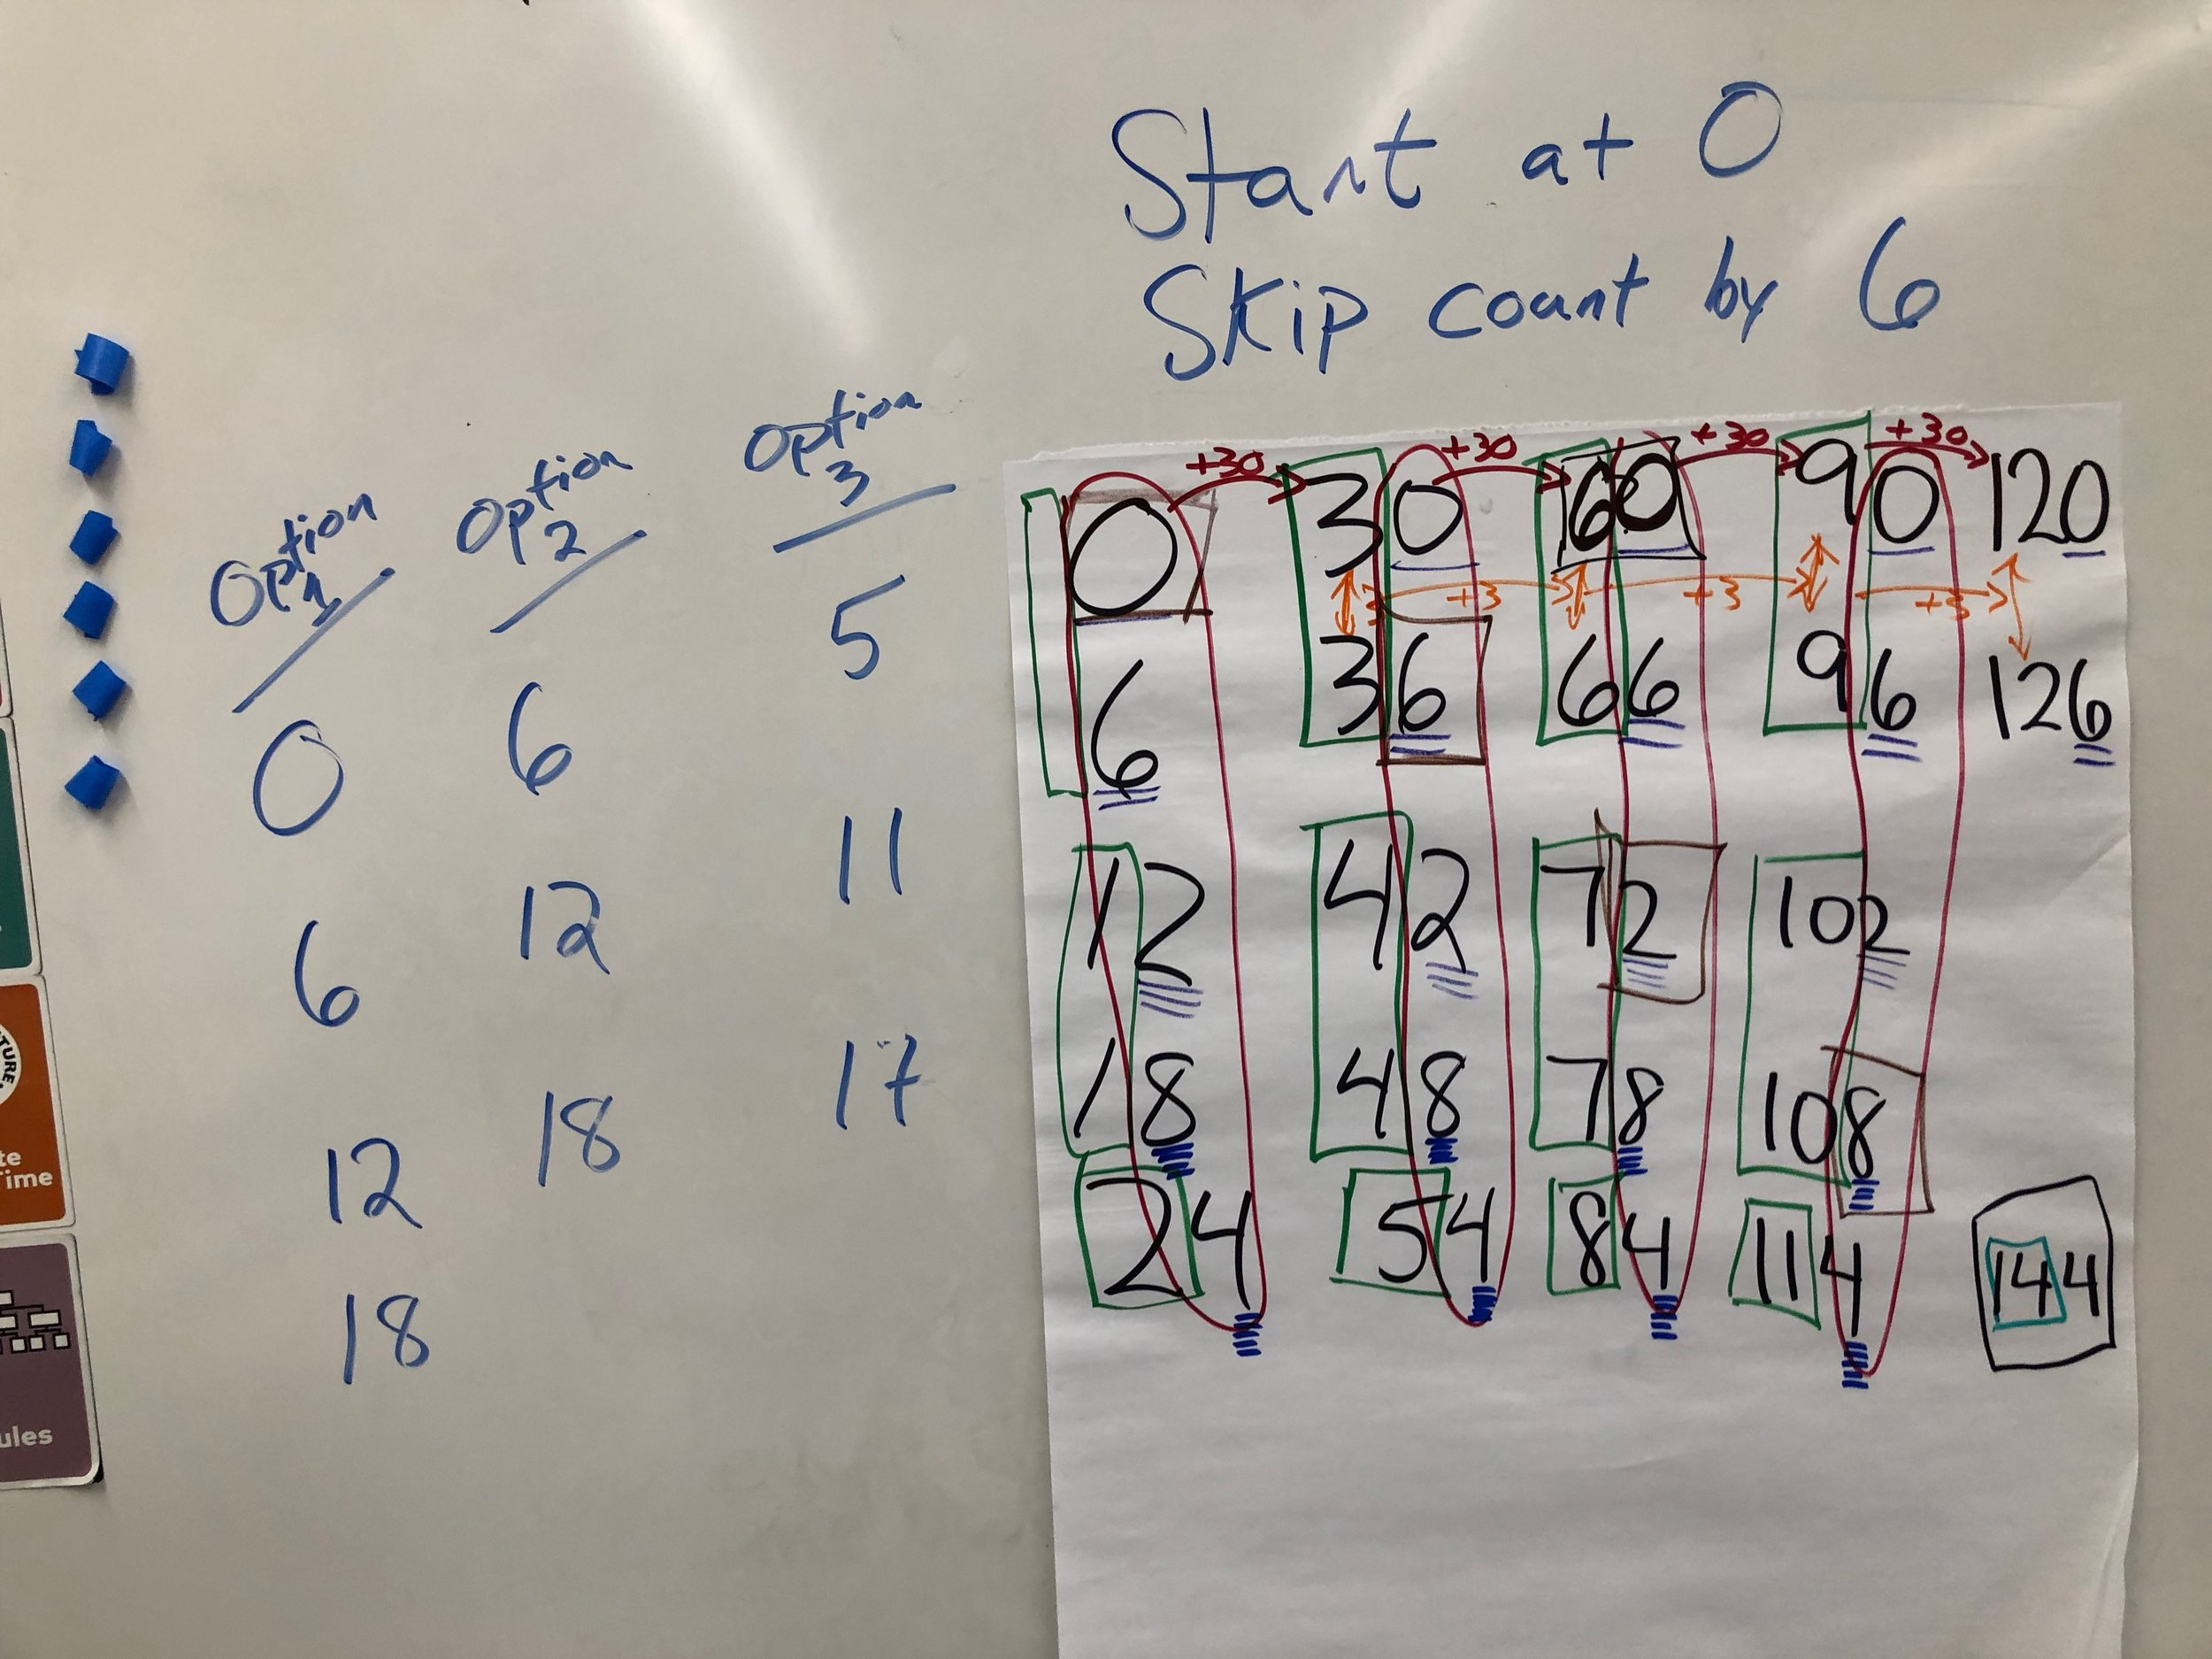 Choral Counting - Students build reasoning of base-ten number system, fractions, measurement by counting, noticing patterns, and predicting.Invites students to describe, justify and generalize.